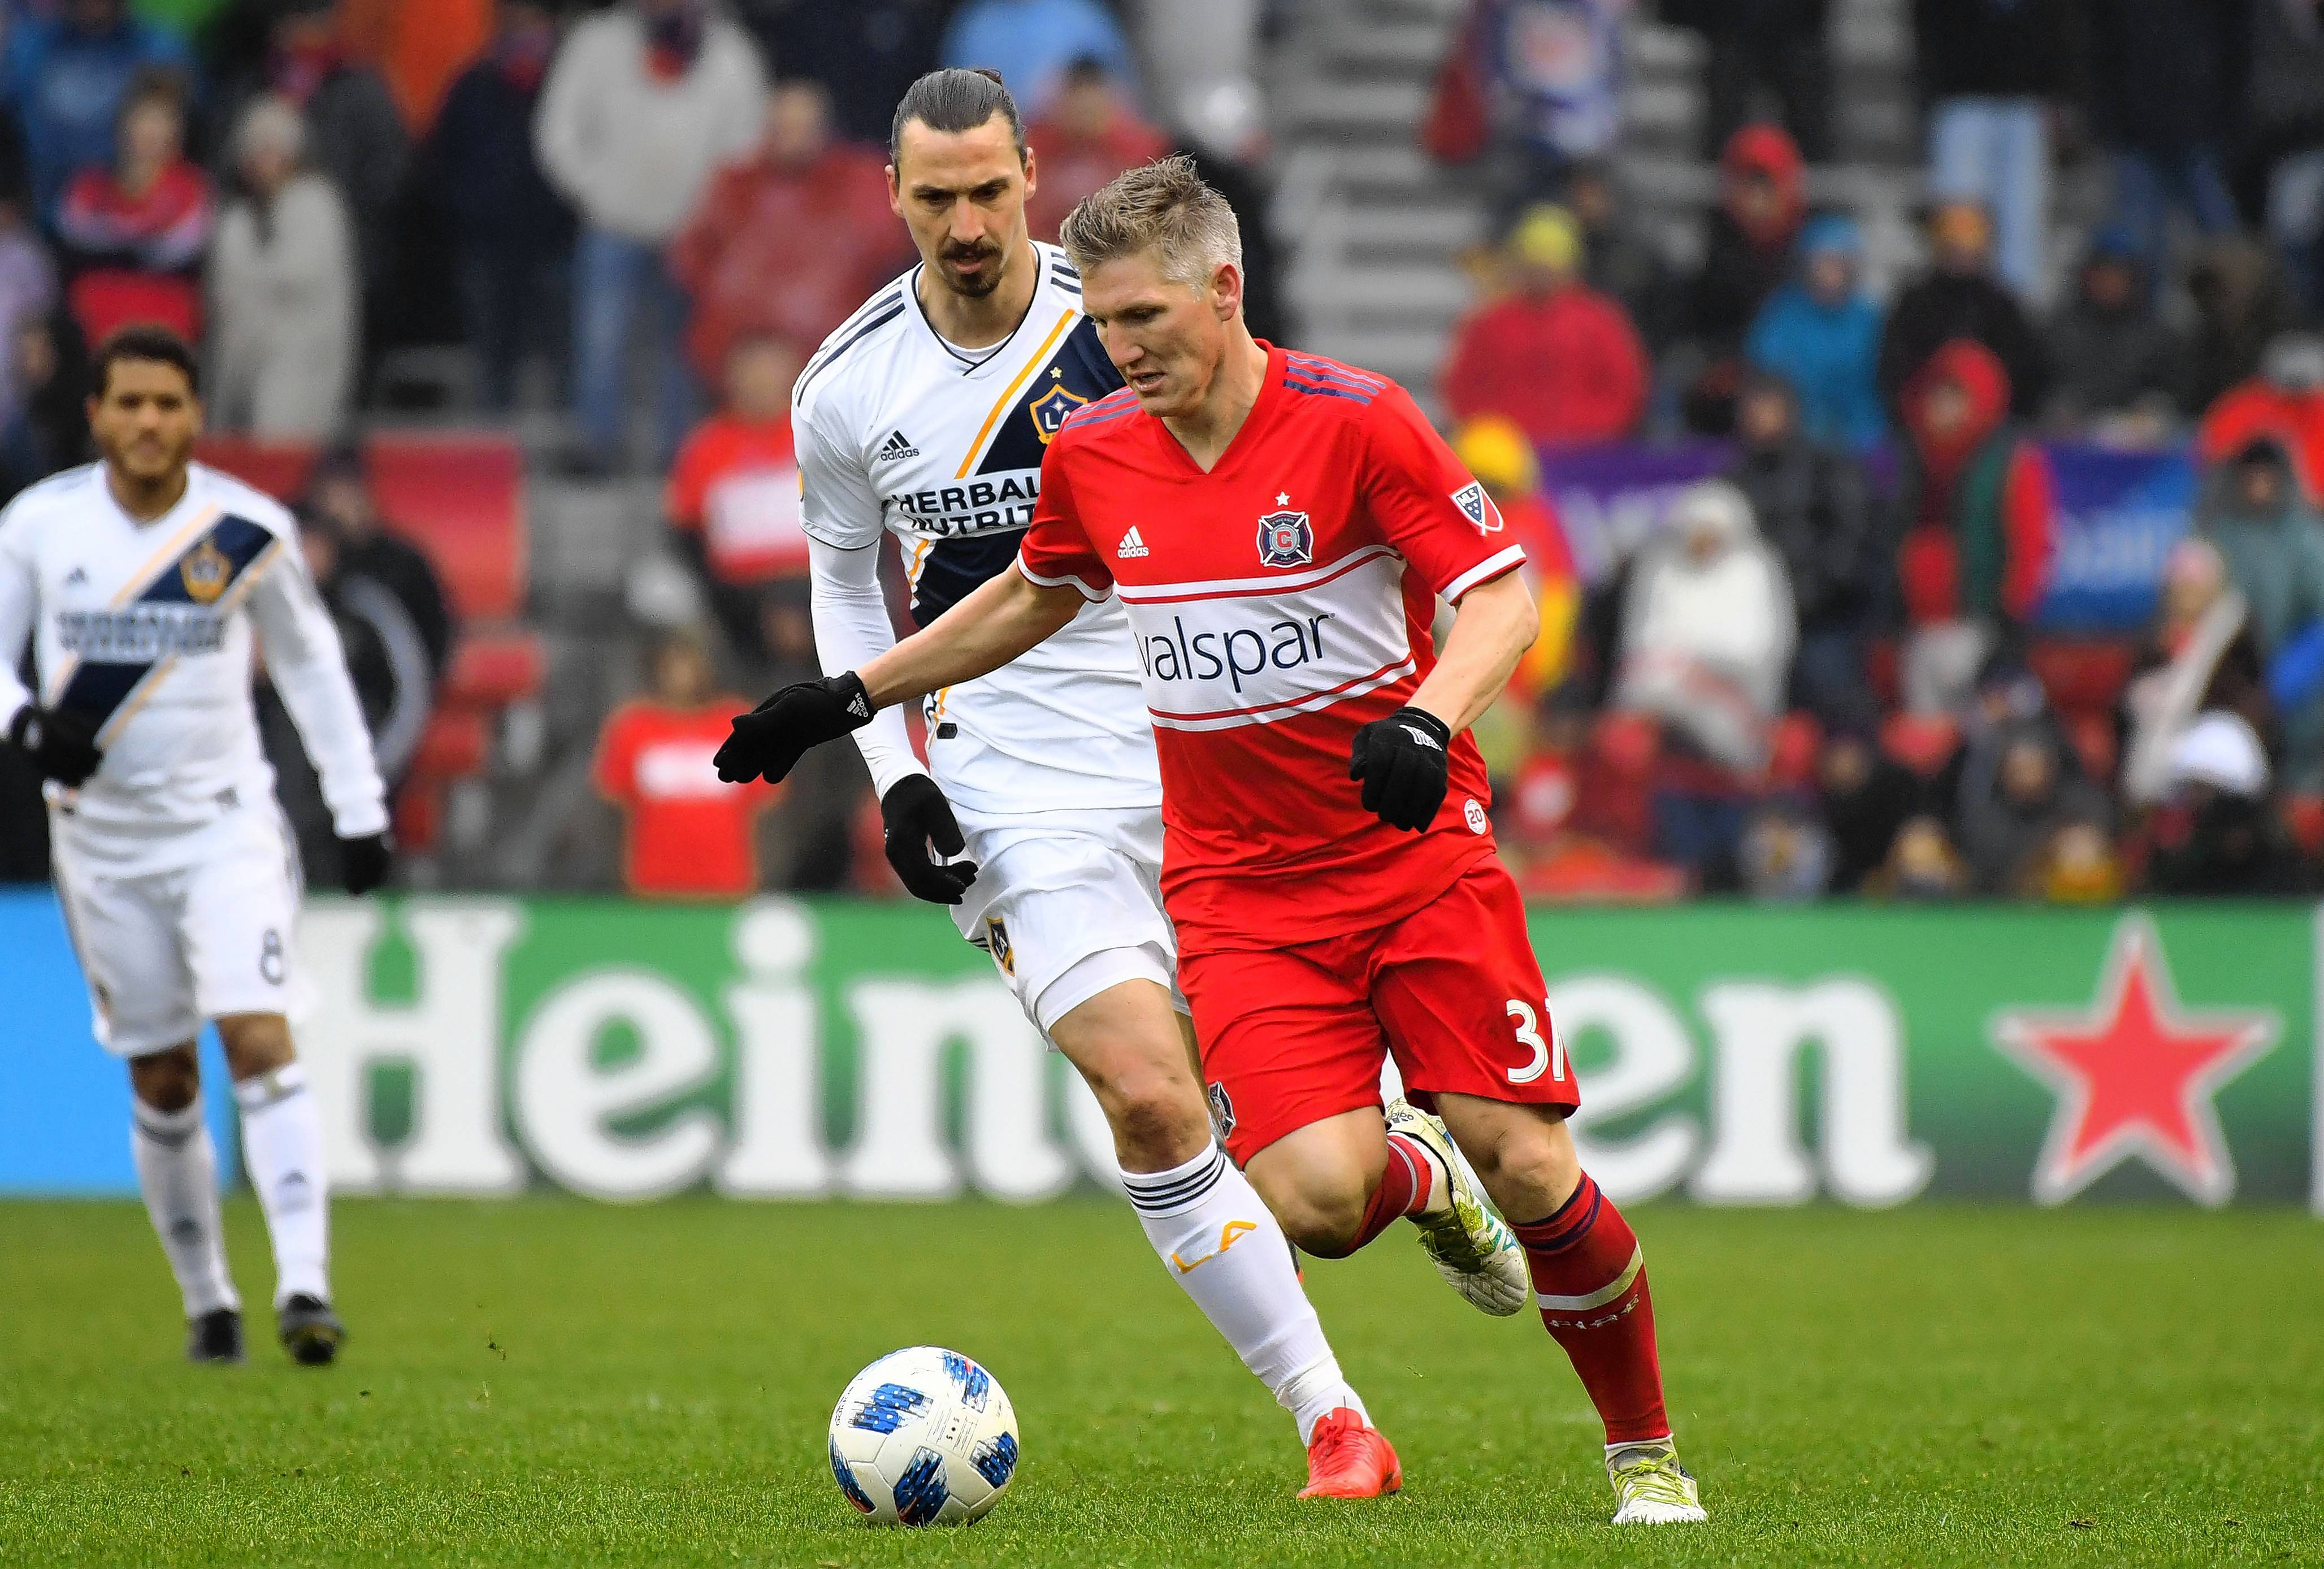 Chicago Fire midfielder Bastian Schweinsteiger (31) kicks the ball away from Los Angeles Galaxy forward Zlatan Ibrahimovic (9) during the second half at Bridgeview Stadium on Saturday.